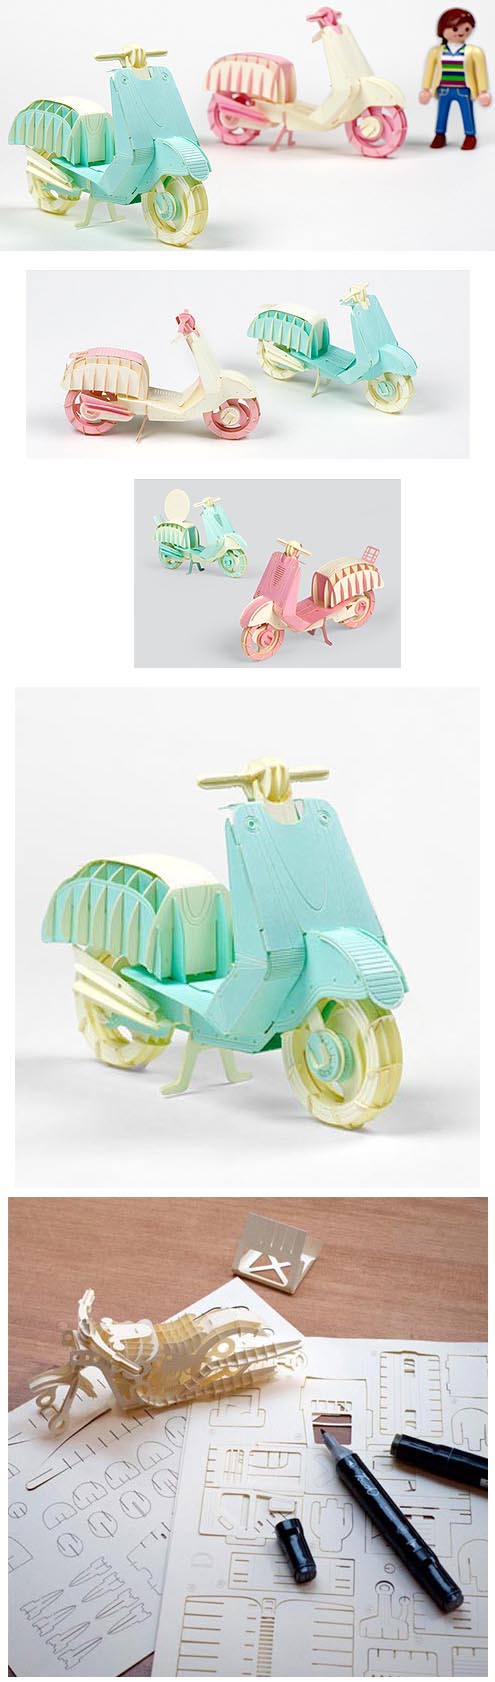 Papero Scooter Couples Paper Models Vespa